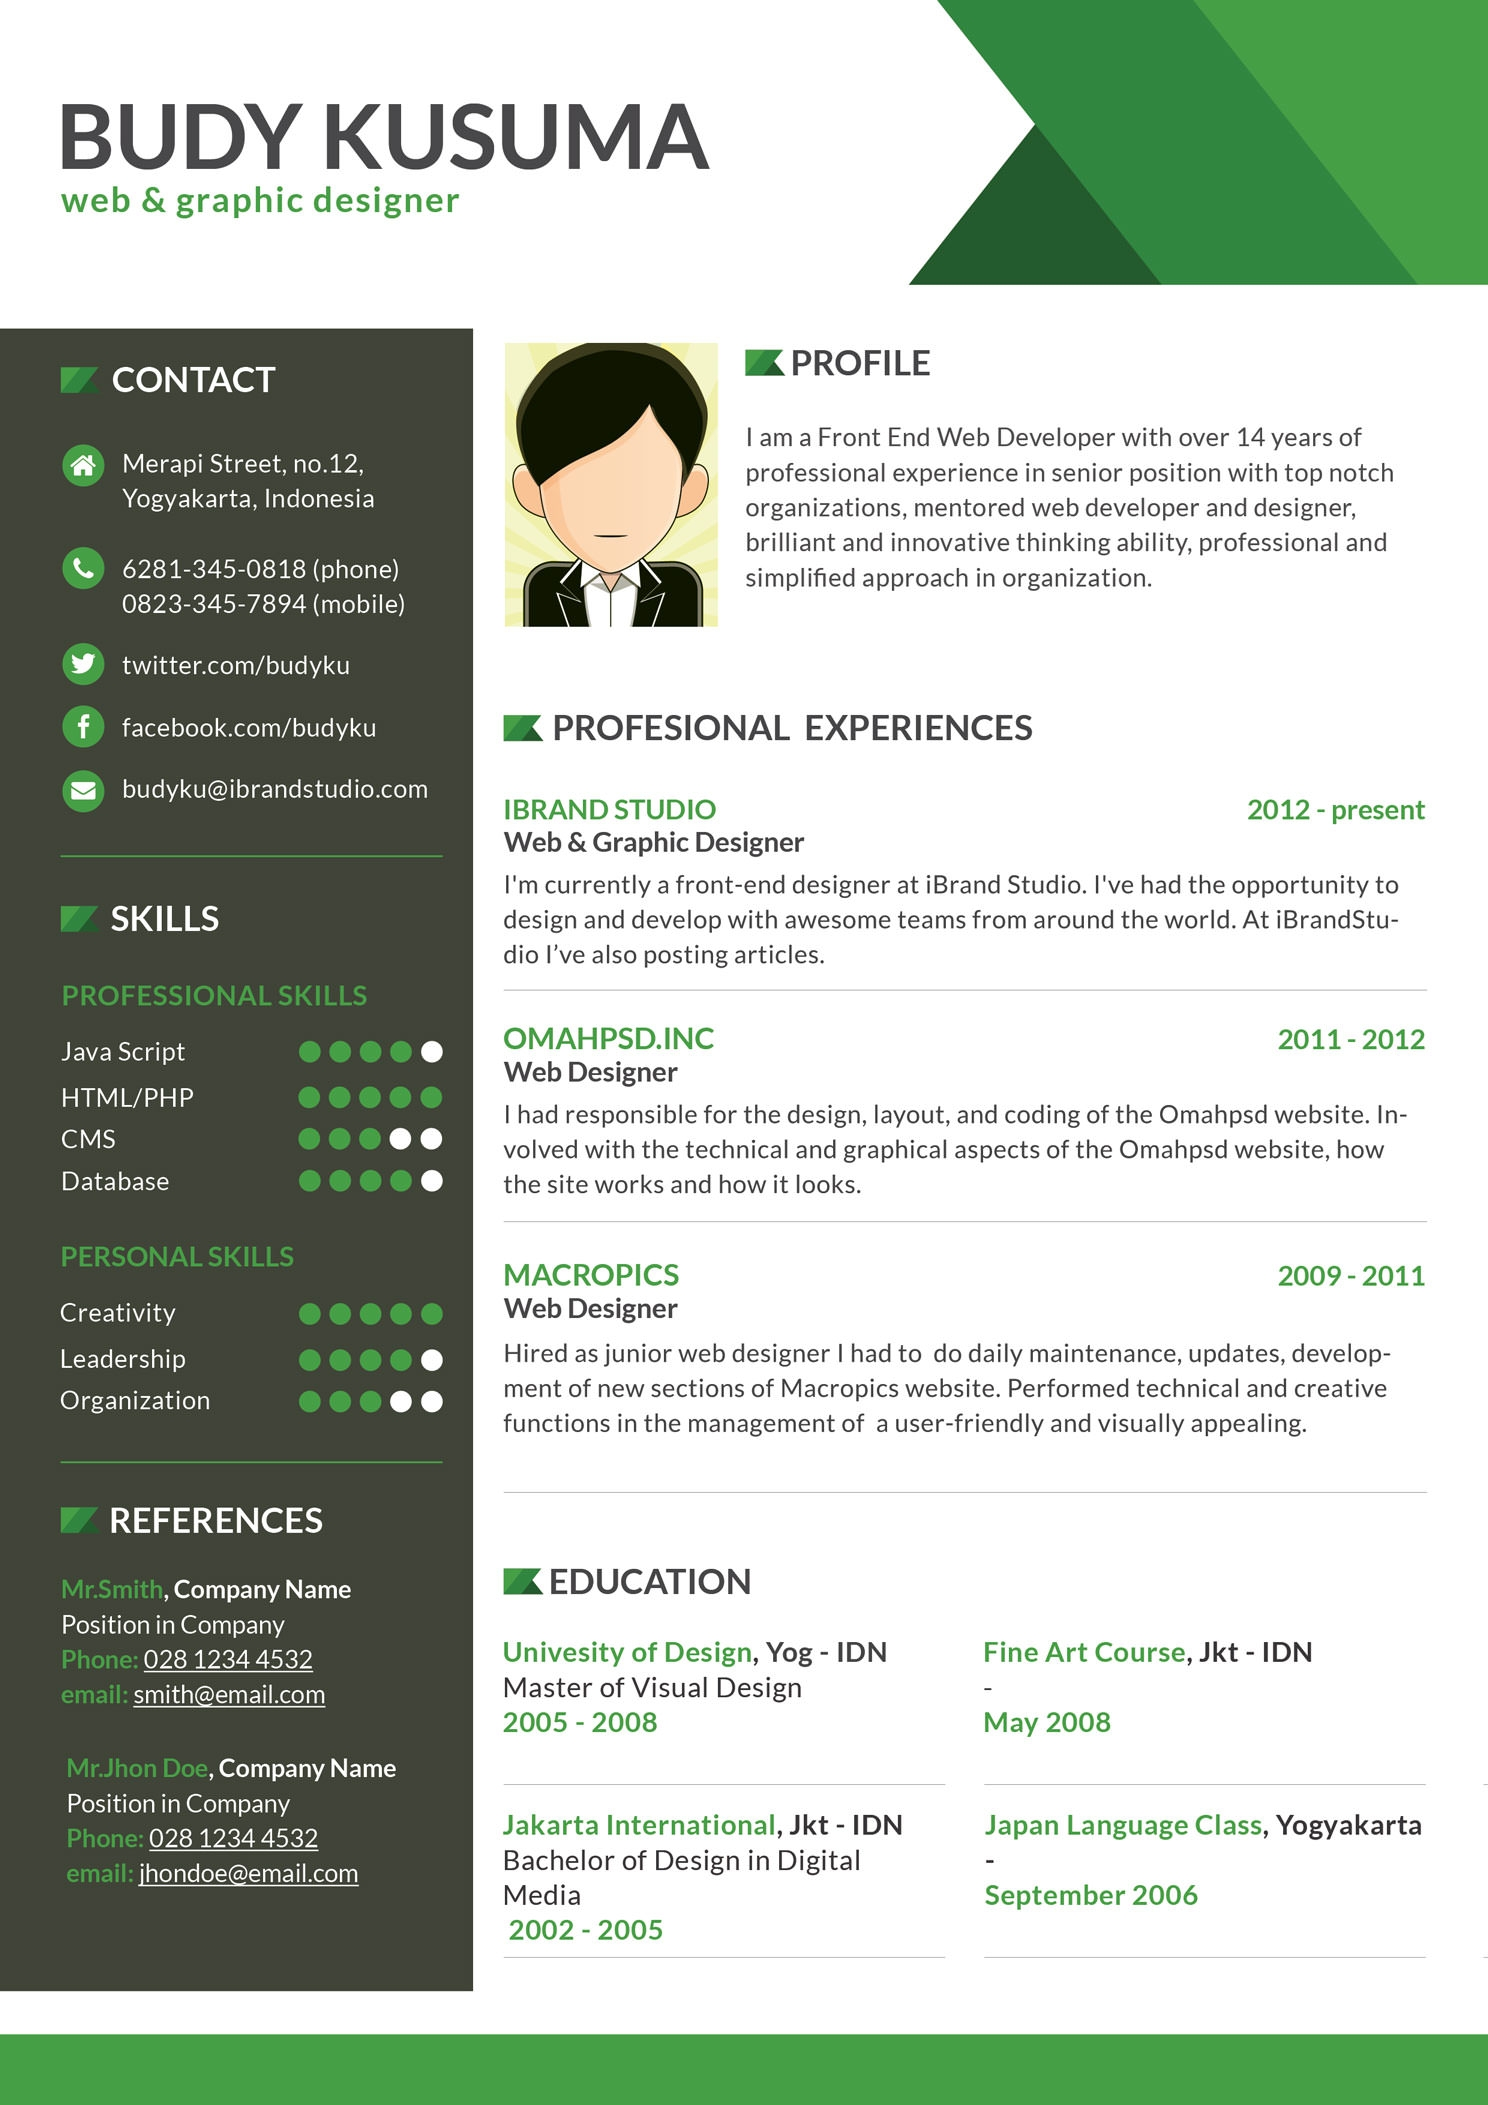 40 resume template designs creatives flasher resume template green button 171211112111121